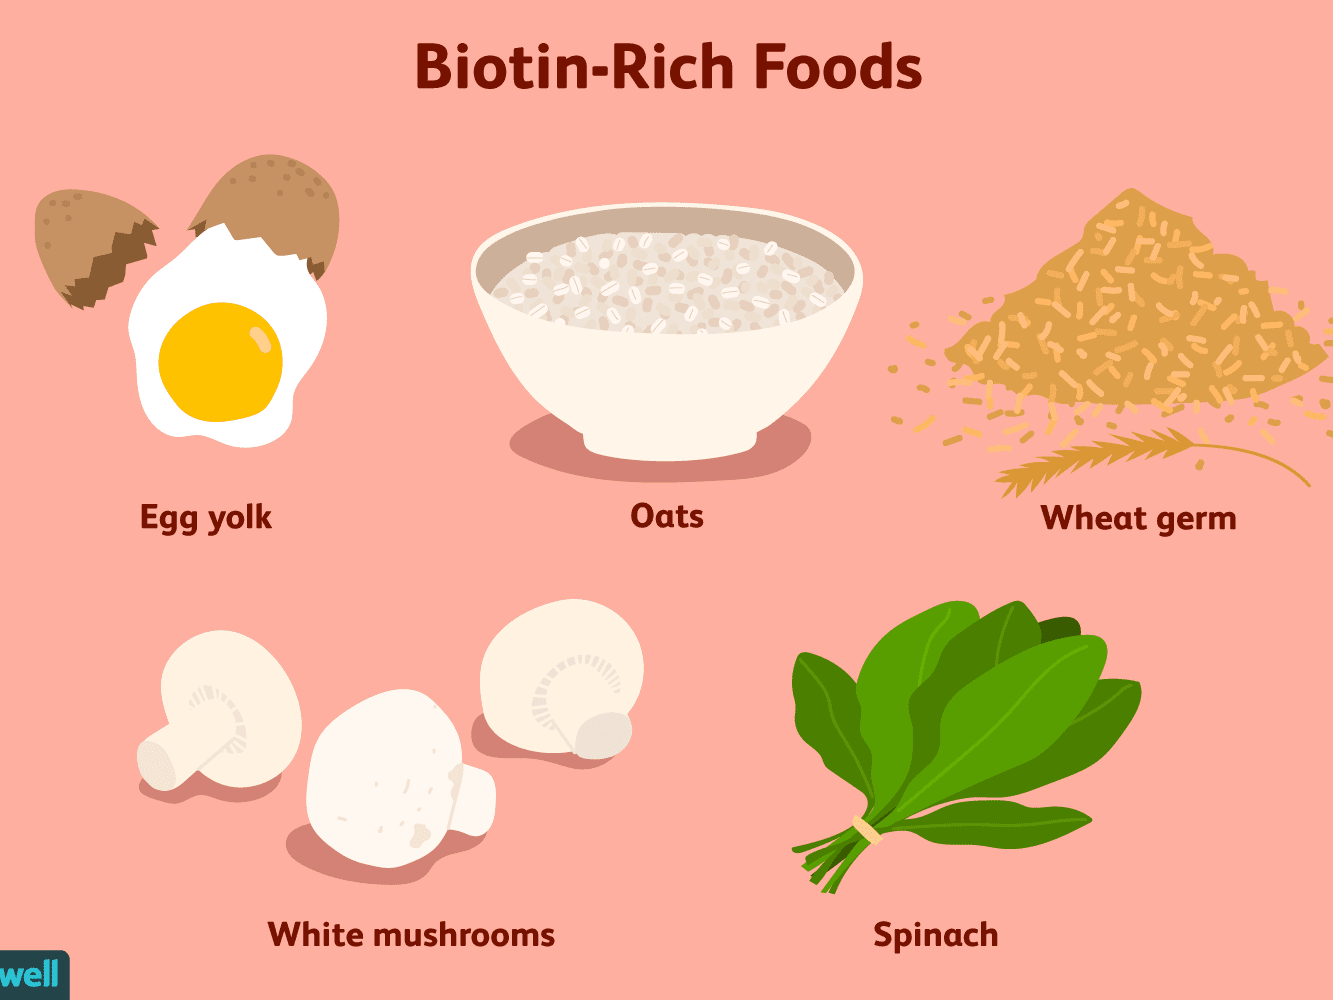 11 Biotin-Rich Foods You Need To Eat